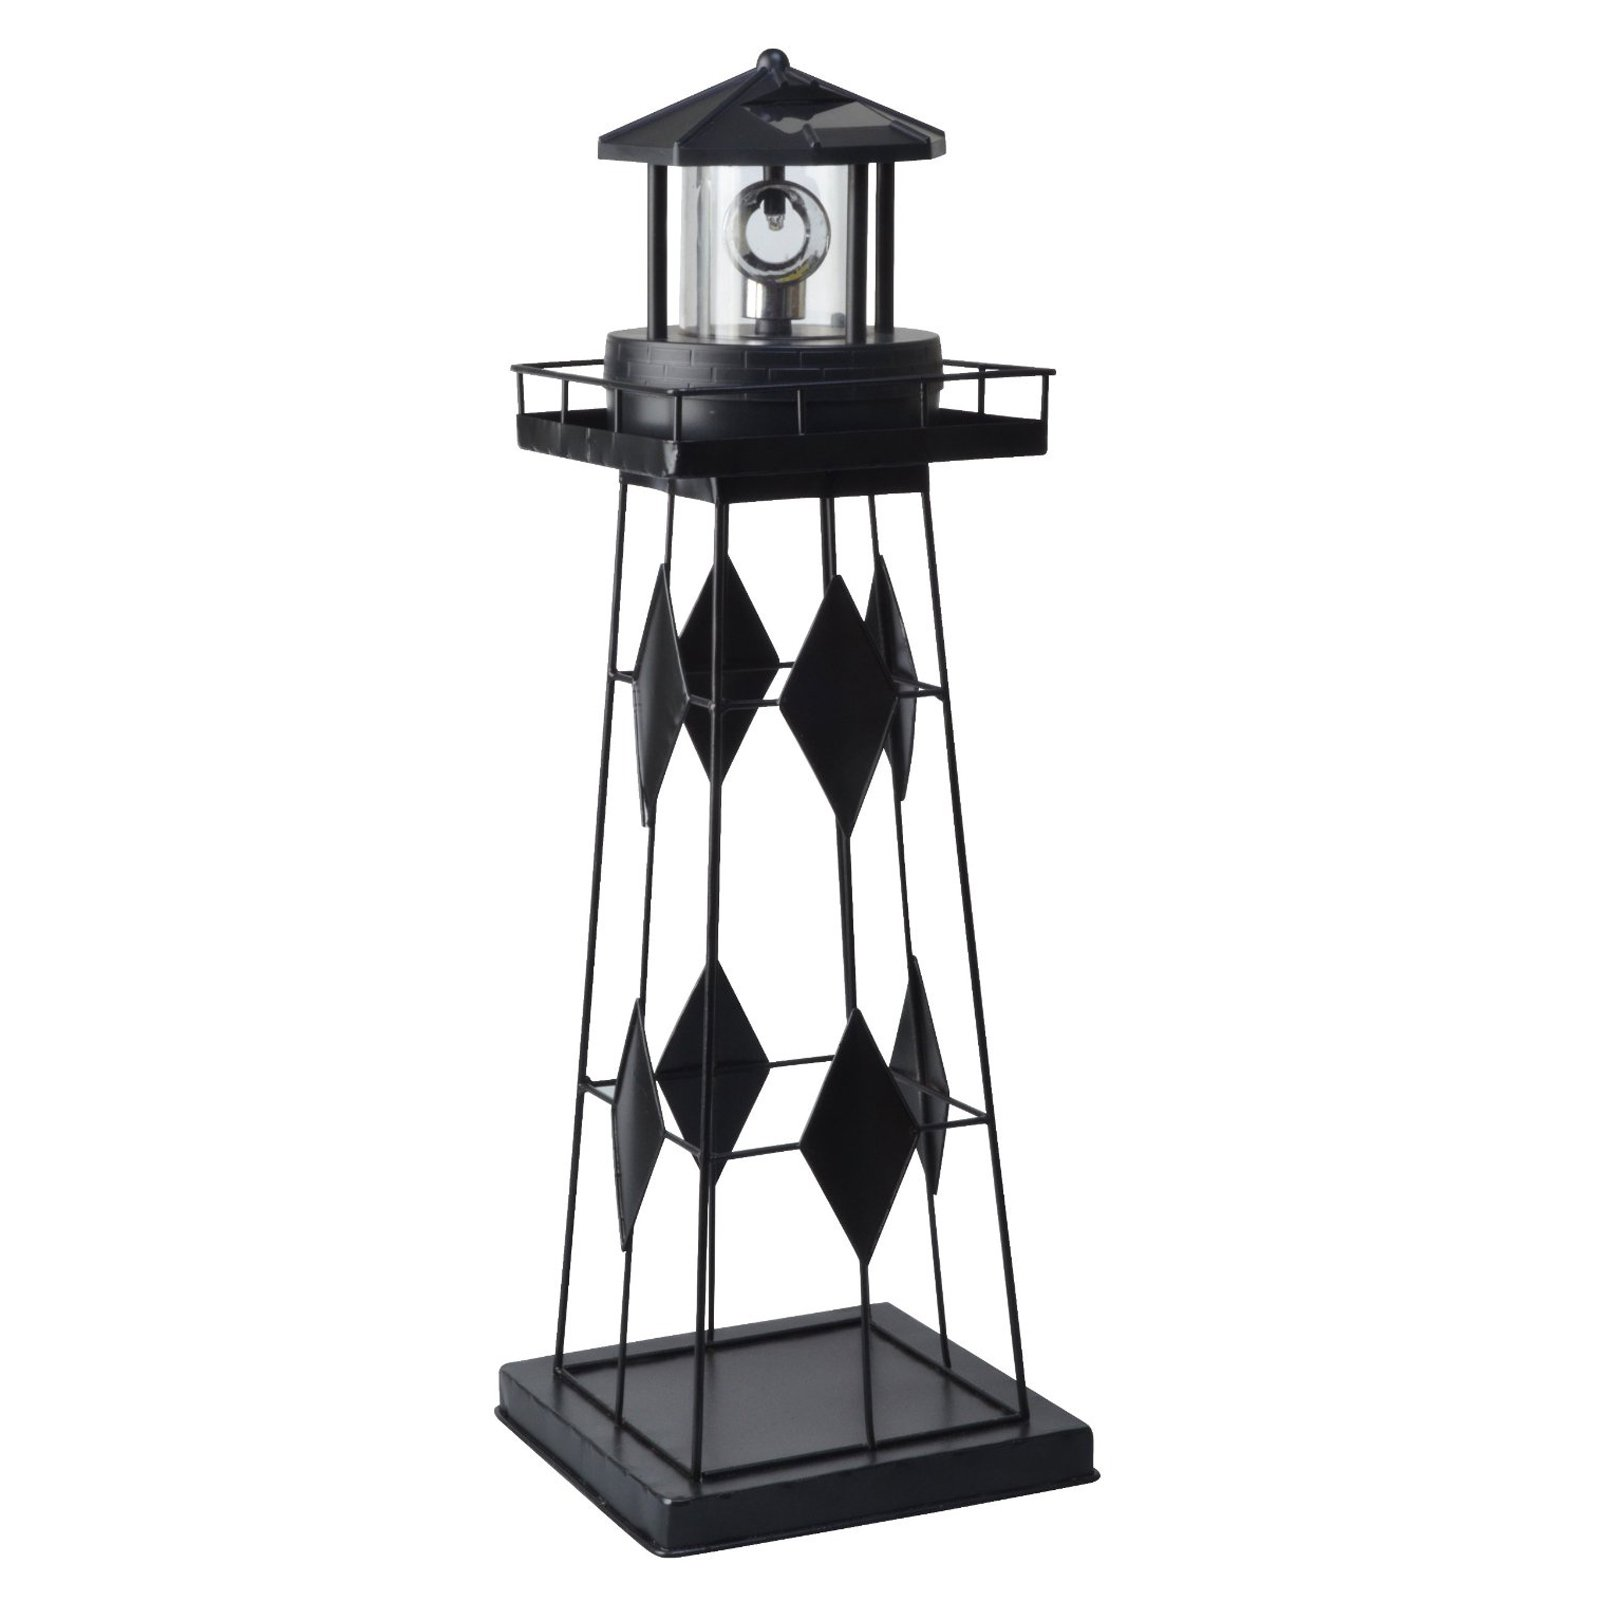 Moonrays 91526 Solar Powered LED Lighthouse